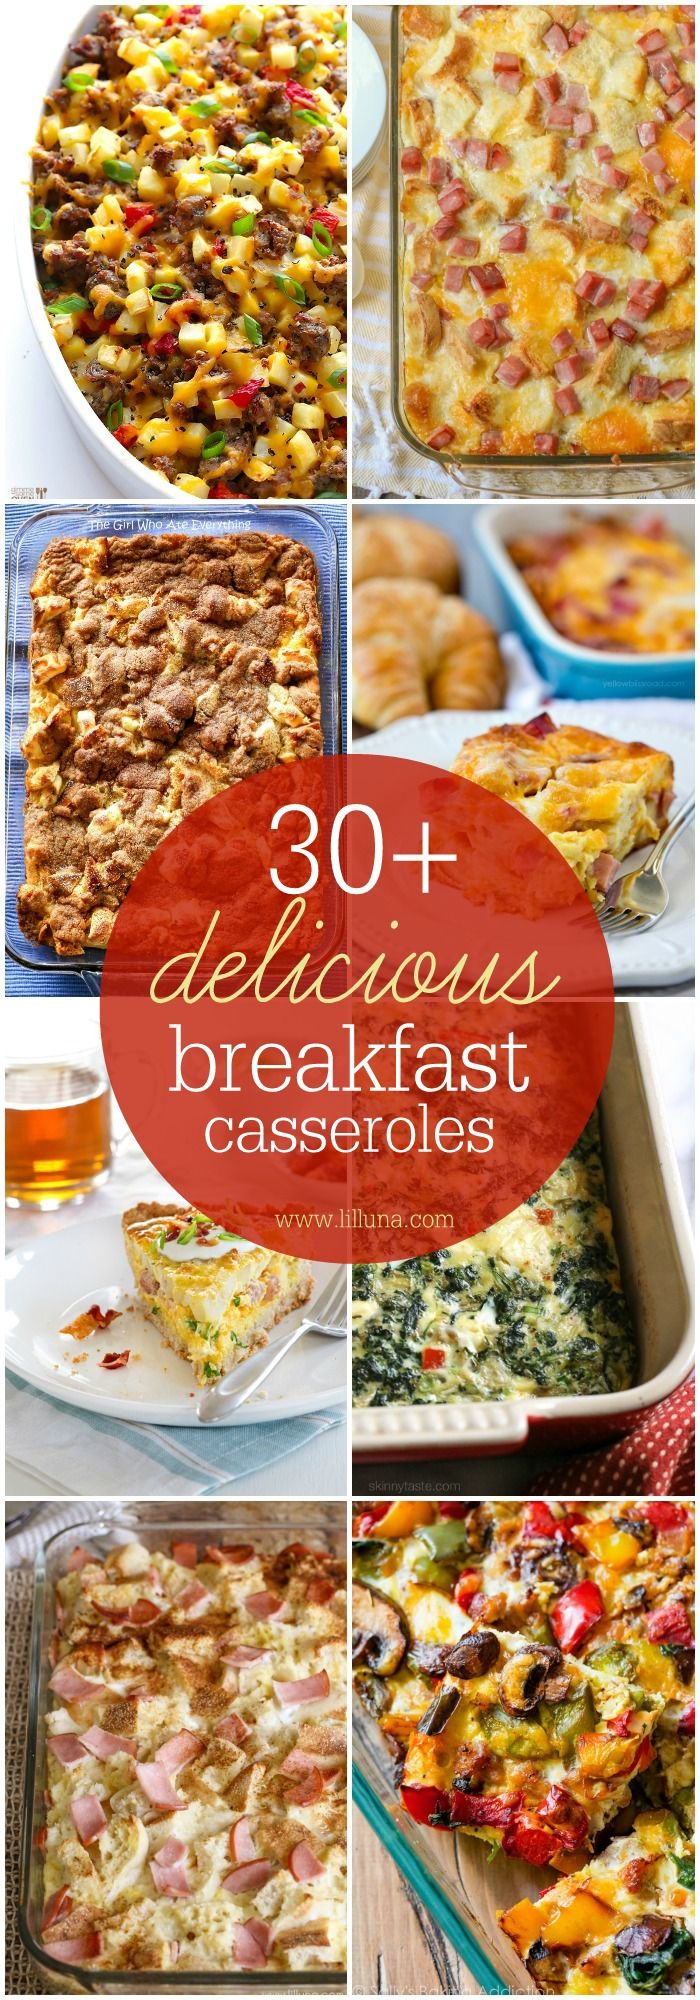 30+ Delicious Sweet and Savory breakfast casserole recipes!